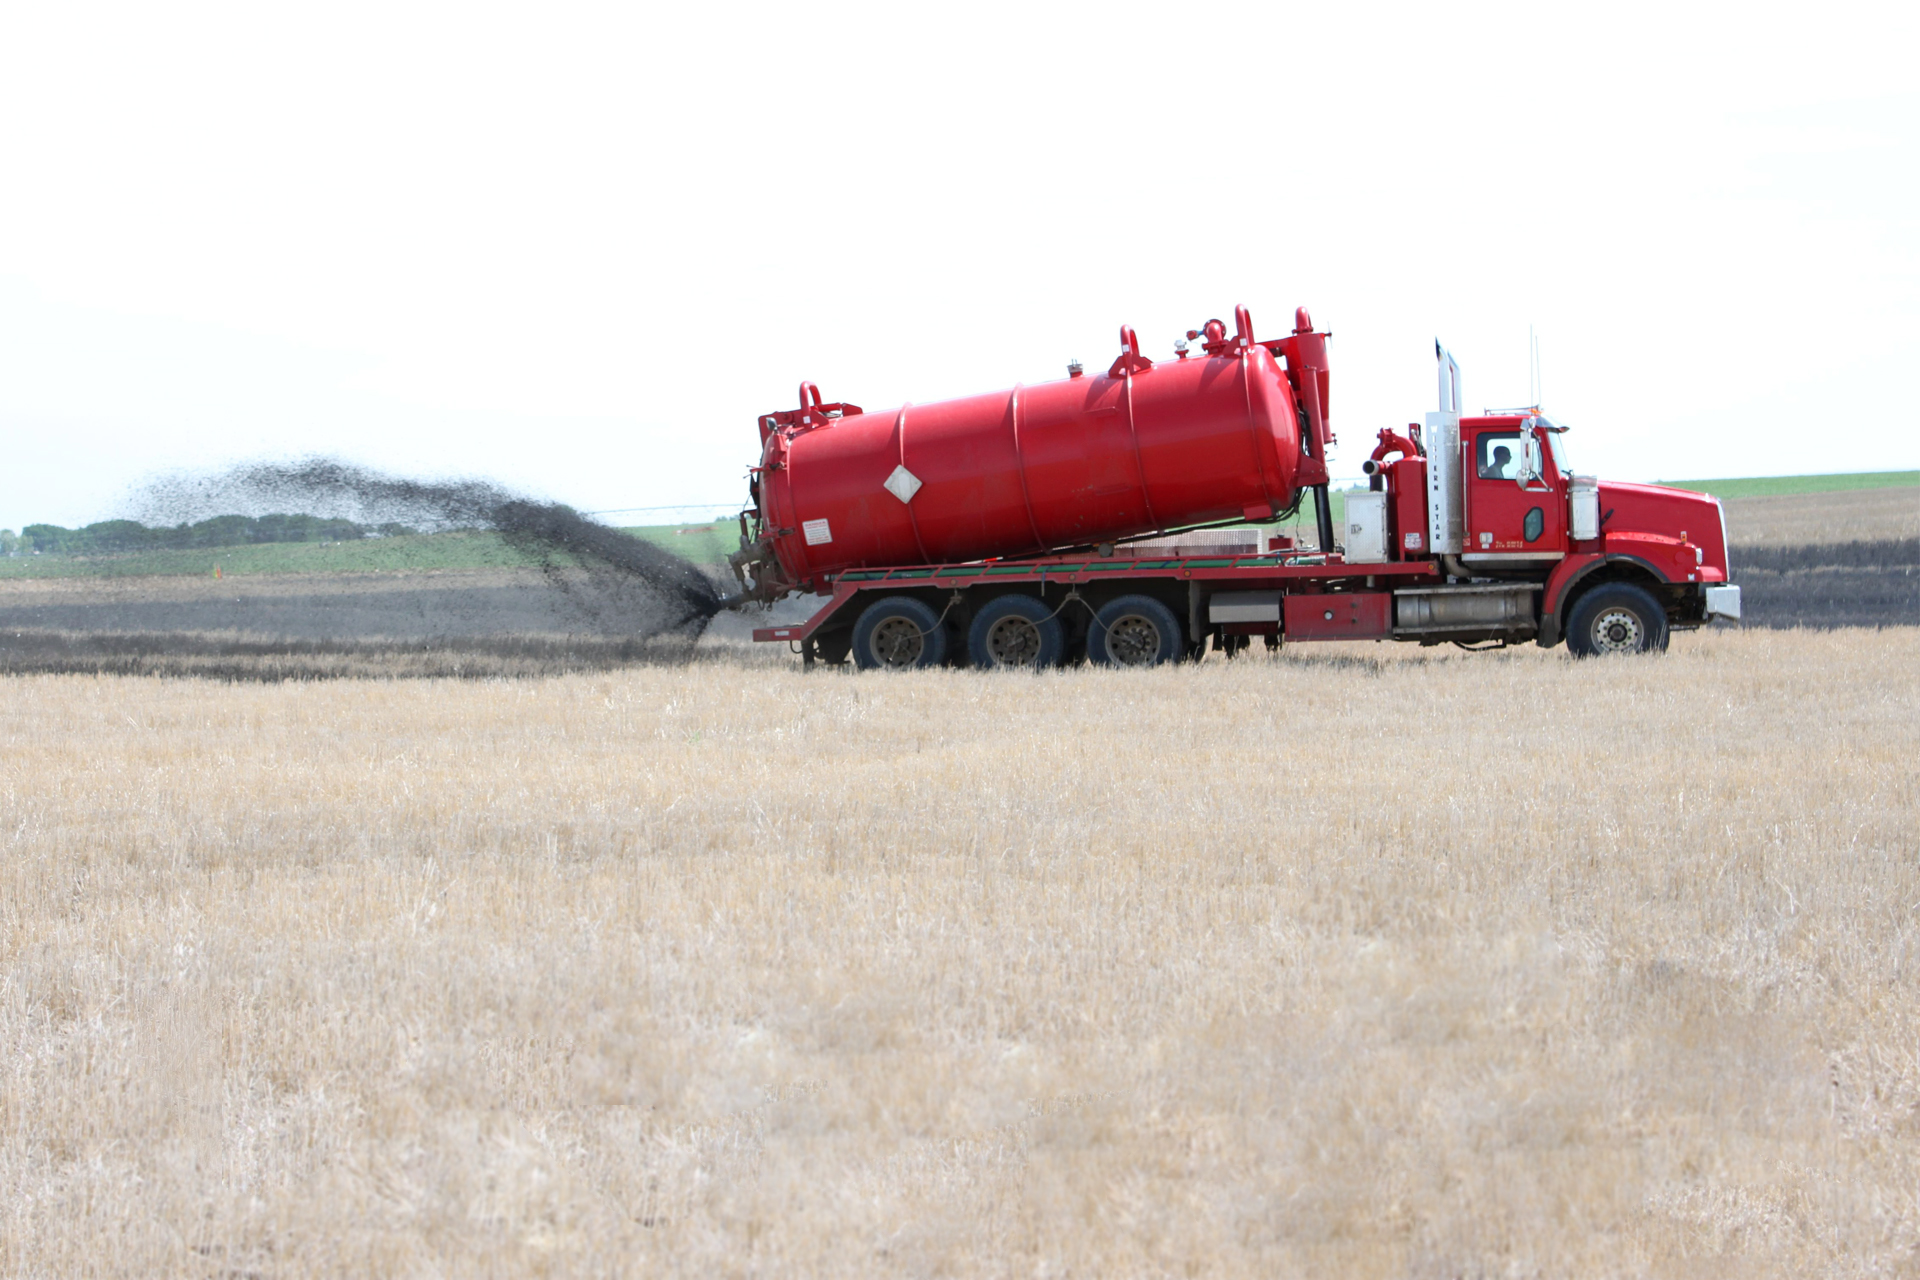 Drilling waste truck spray